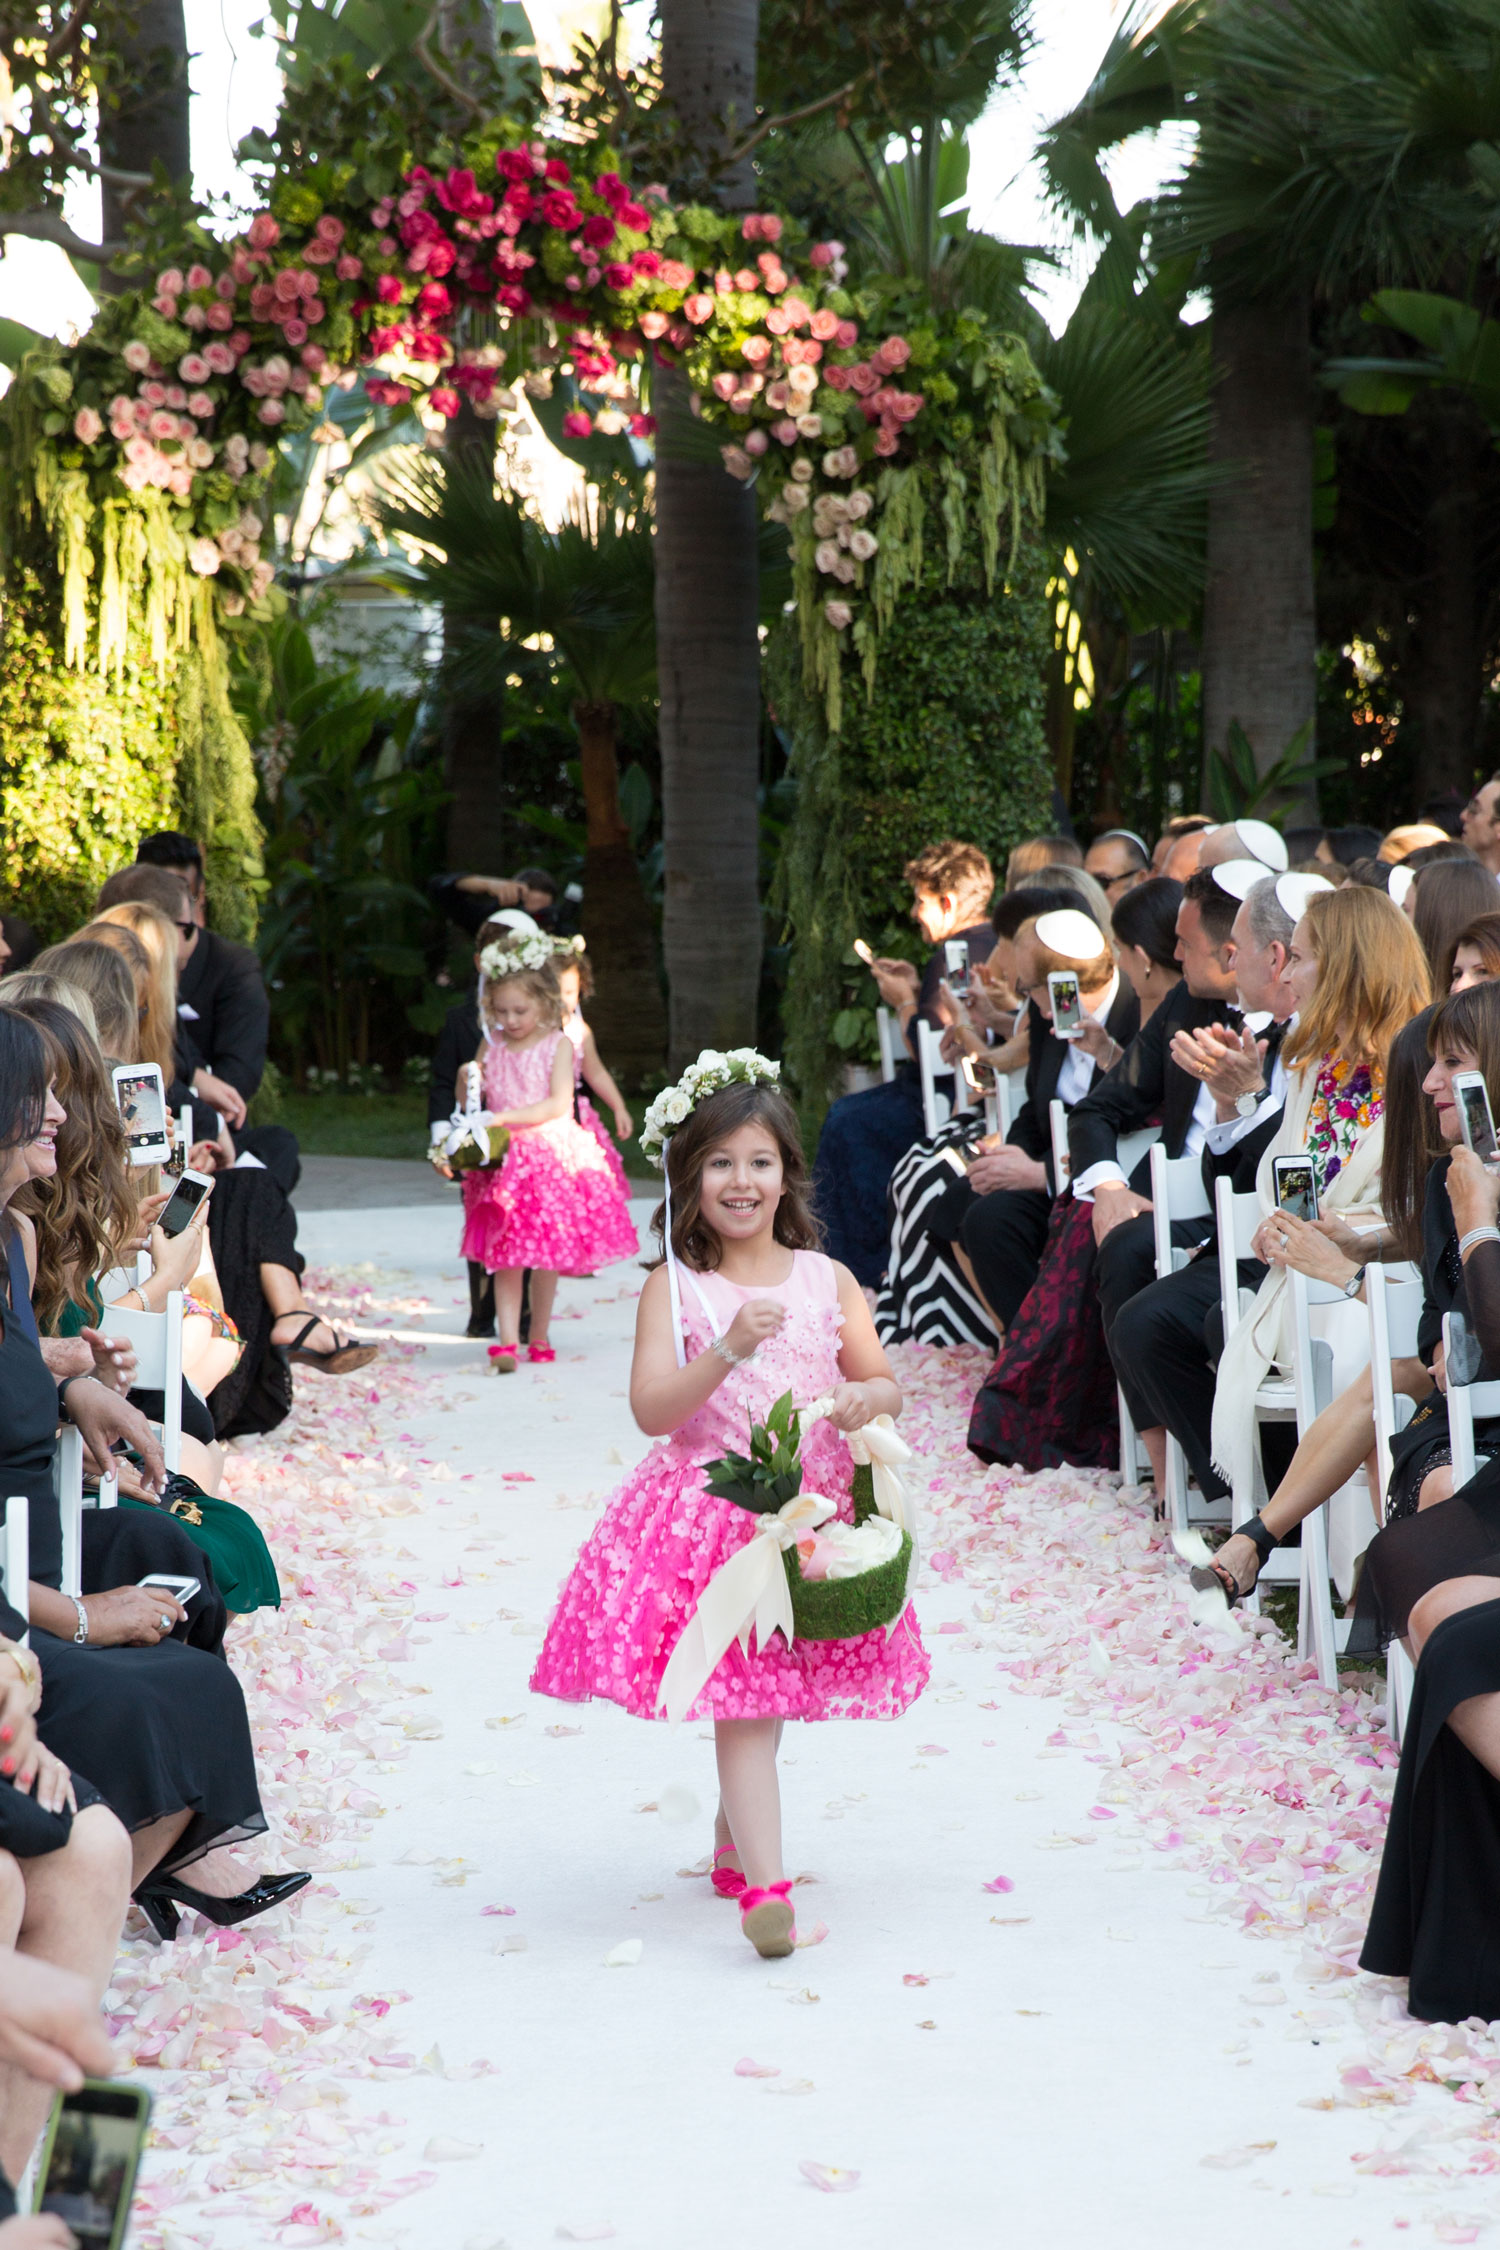 Flower girls walking down aisle in hot pink dresses